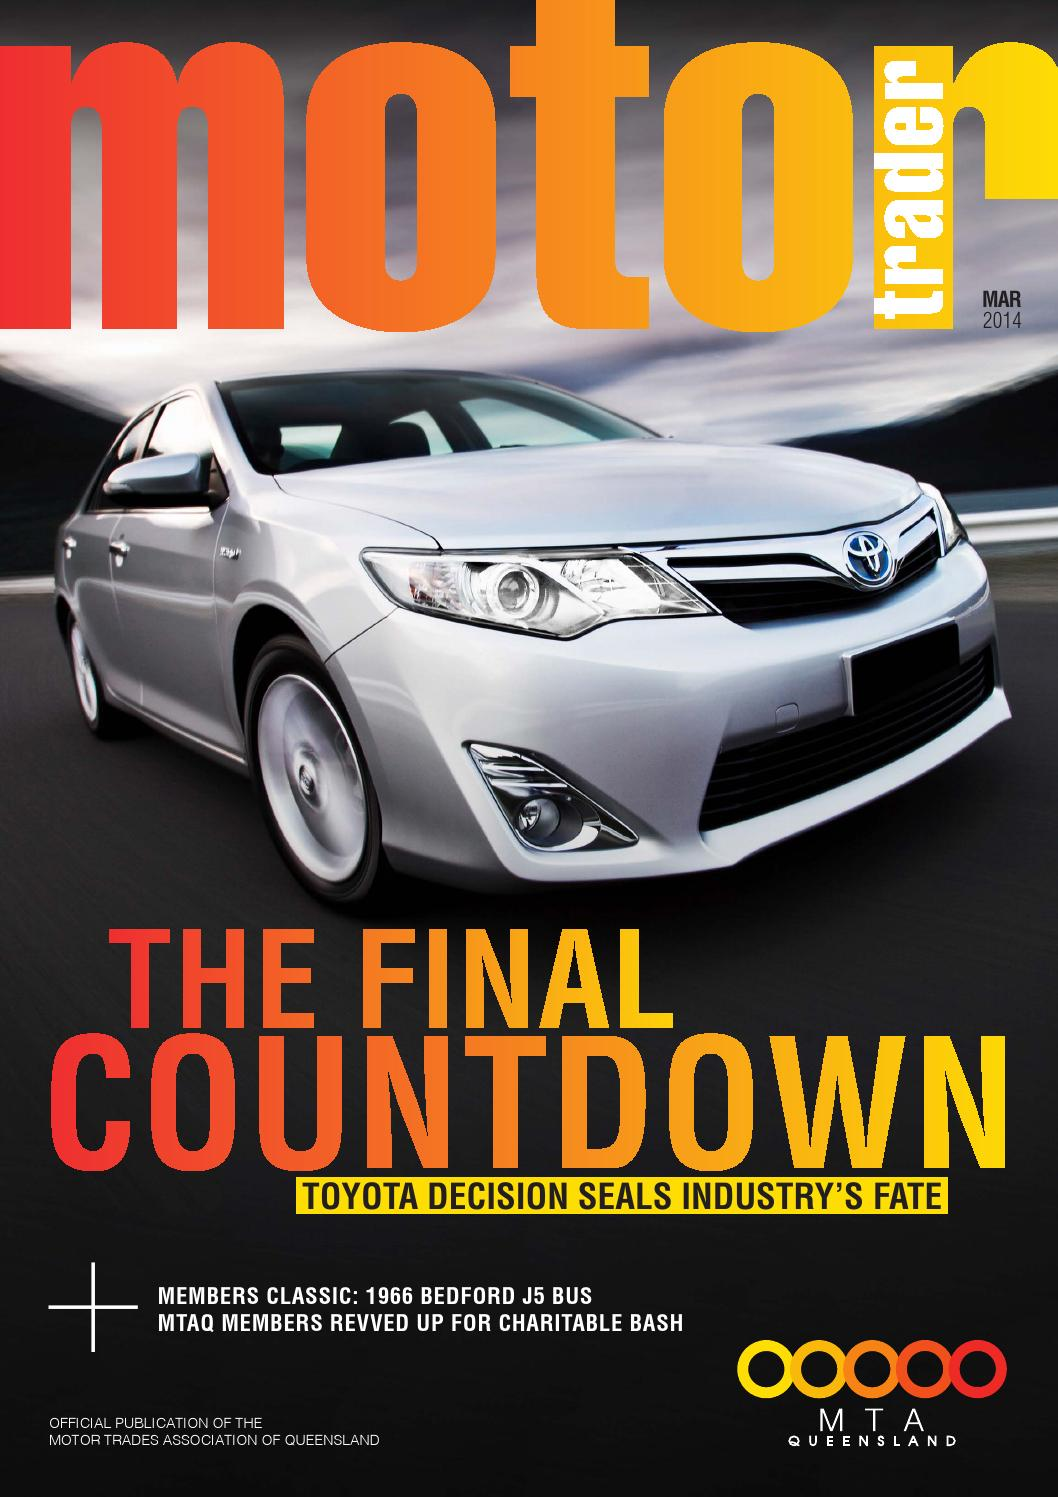 Motor Trader March 2014 By Mtaq It Issuu Reece Wiring Harness Toyota